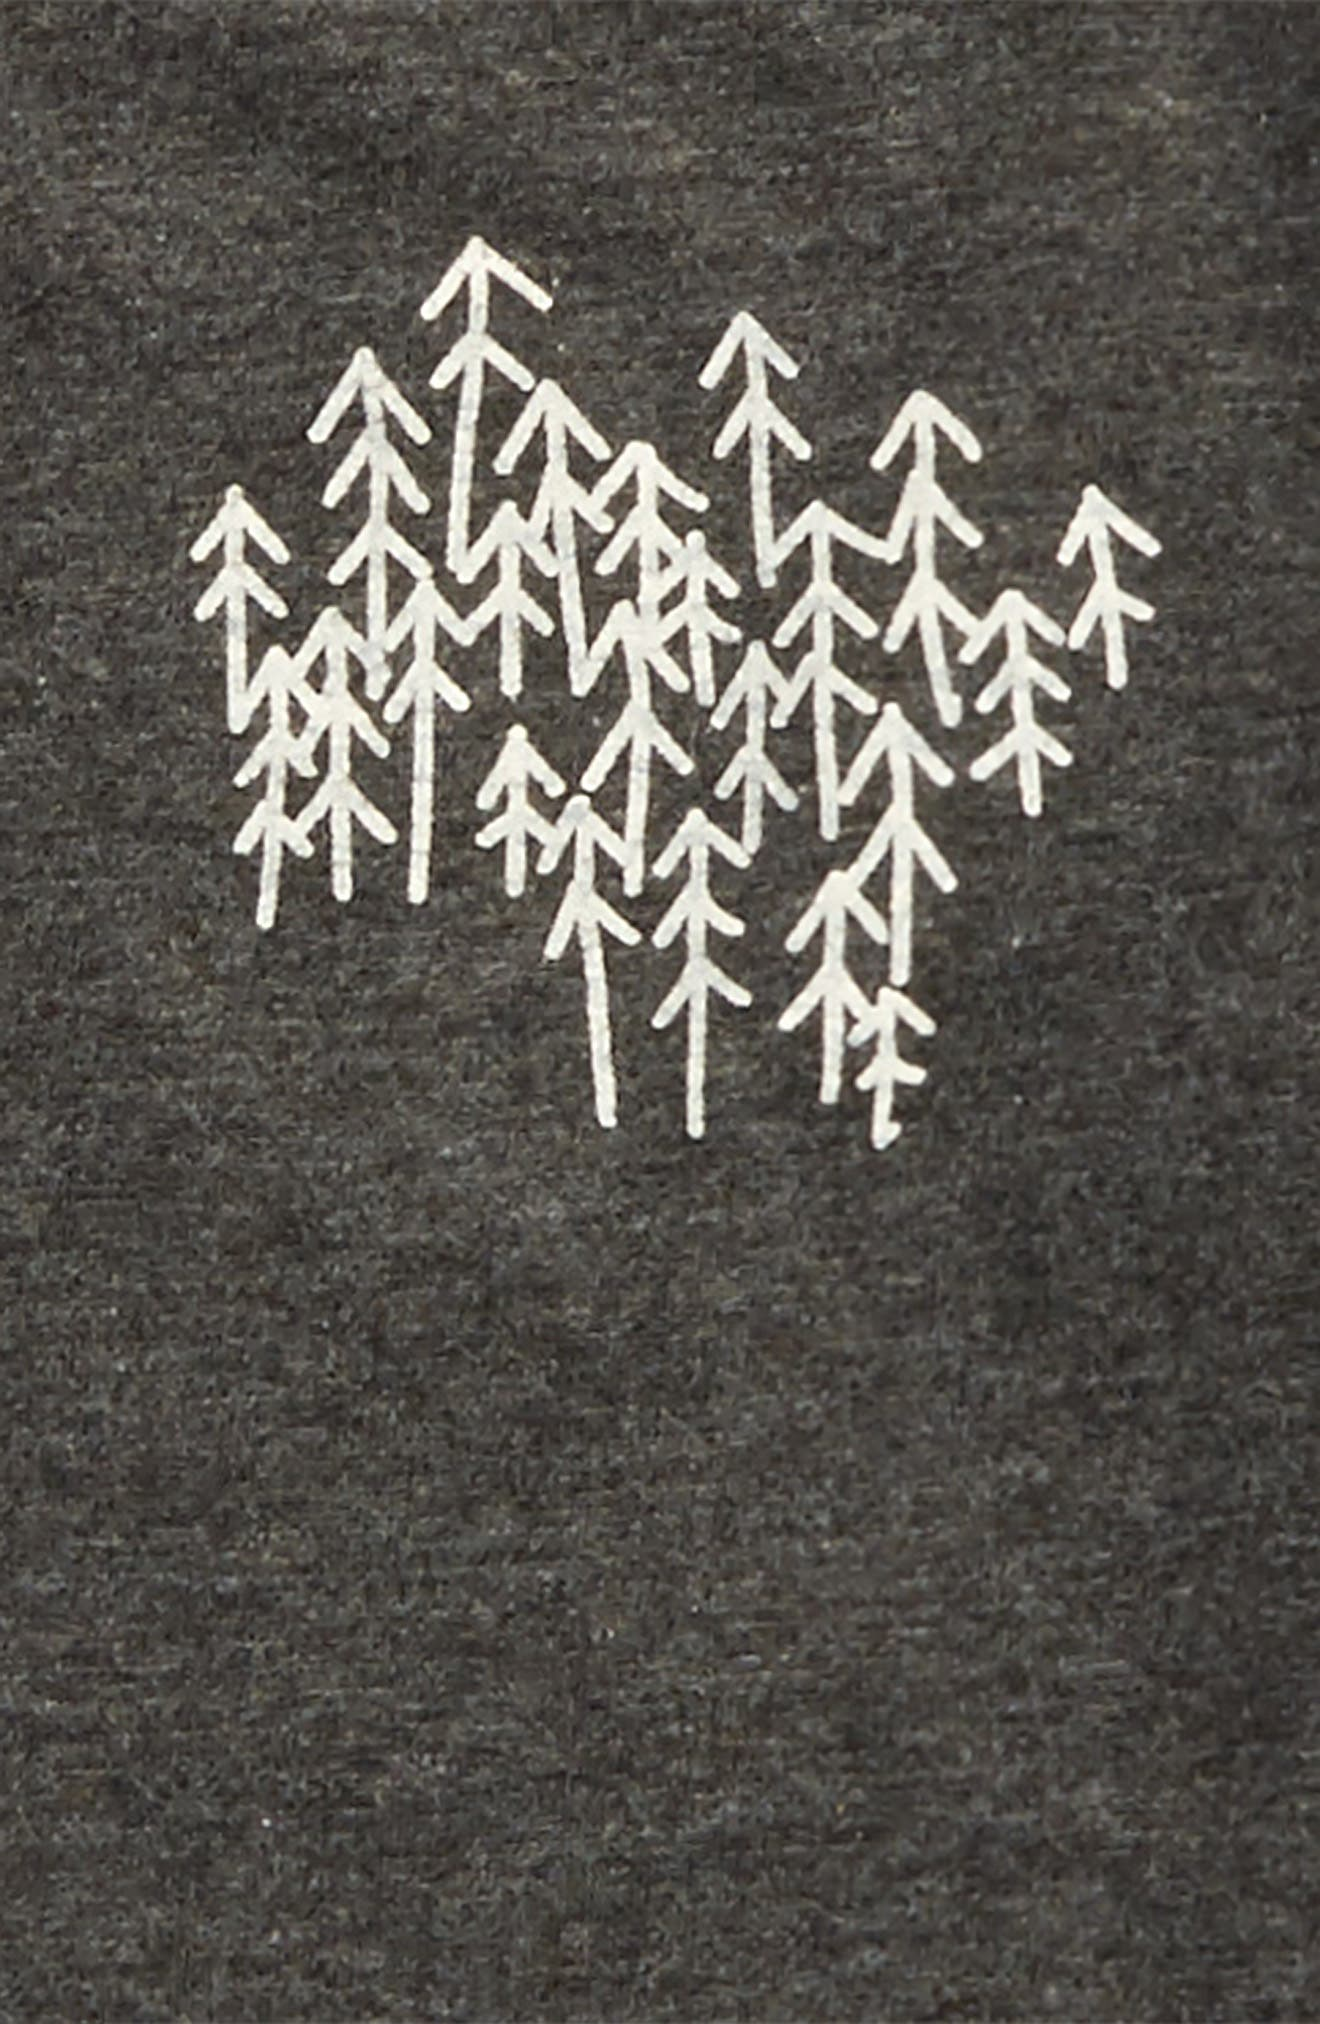 Alternate Image 2  - Burt's Bees Baby Snowy Trees Organic Cotton T-Shirt (Toddler Boys & Little Boys)